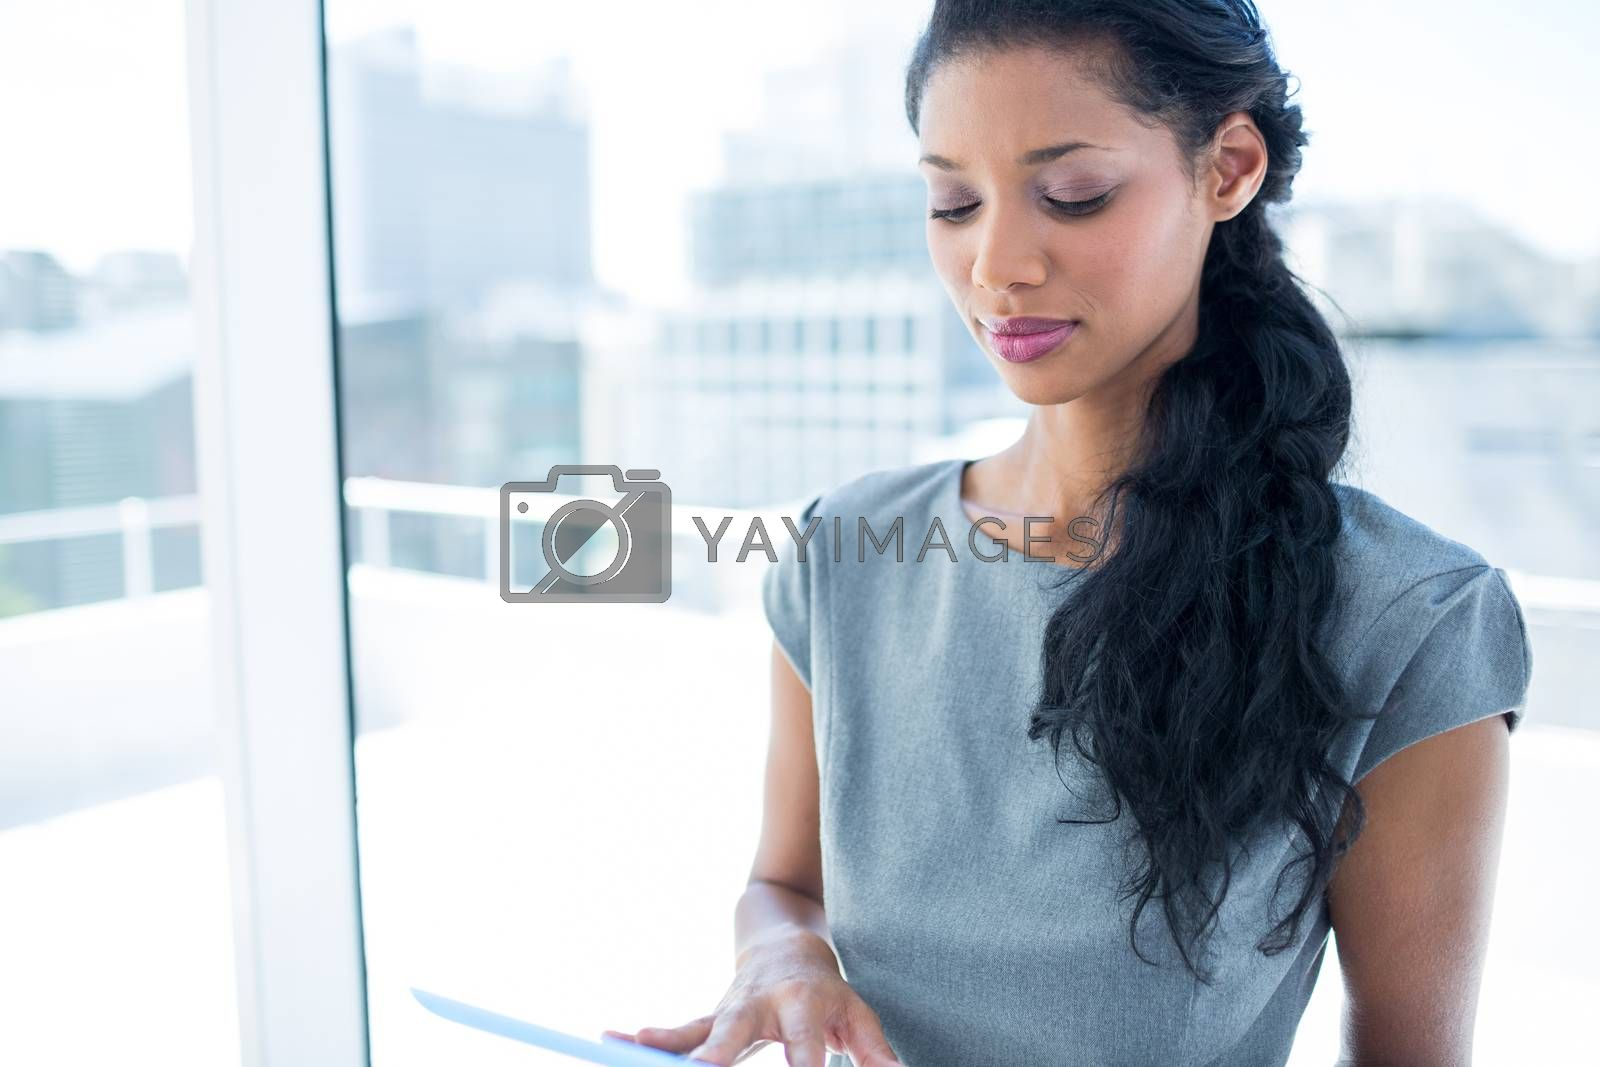 Royalty free image of A focused businesswoman using digital tablet by Wavebreakmedia